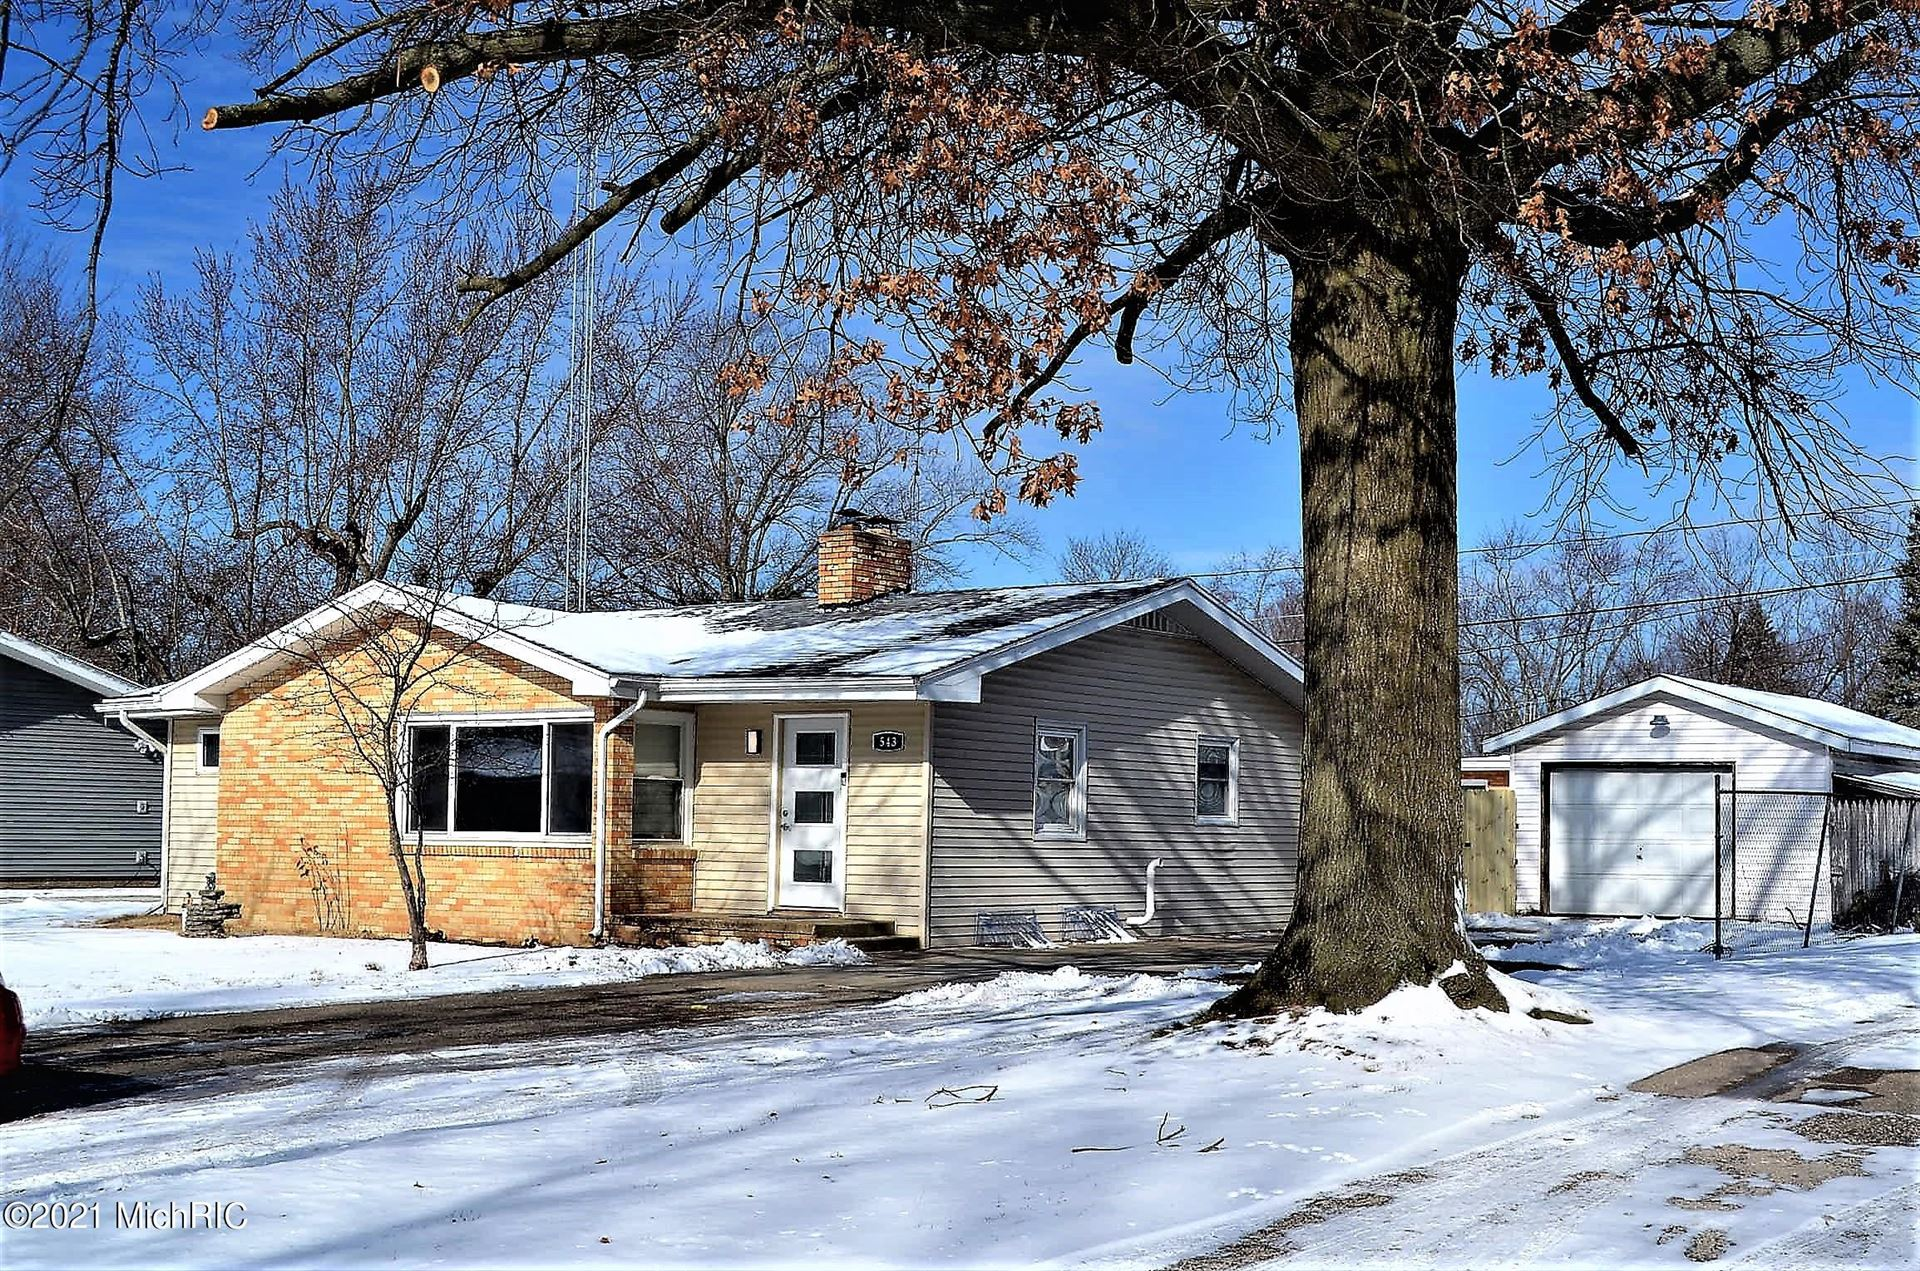 543 Waverly Drive, Benton Harbor, MI 49022 - MLS#: 21002926